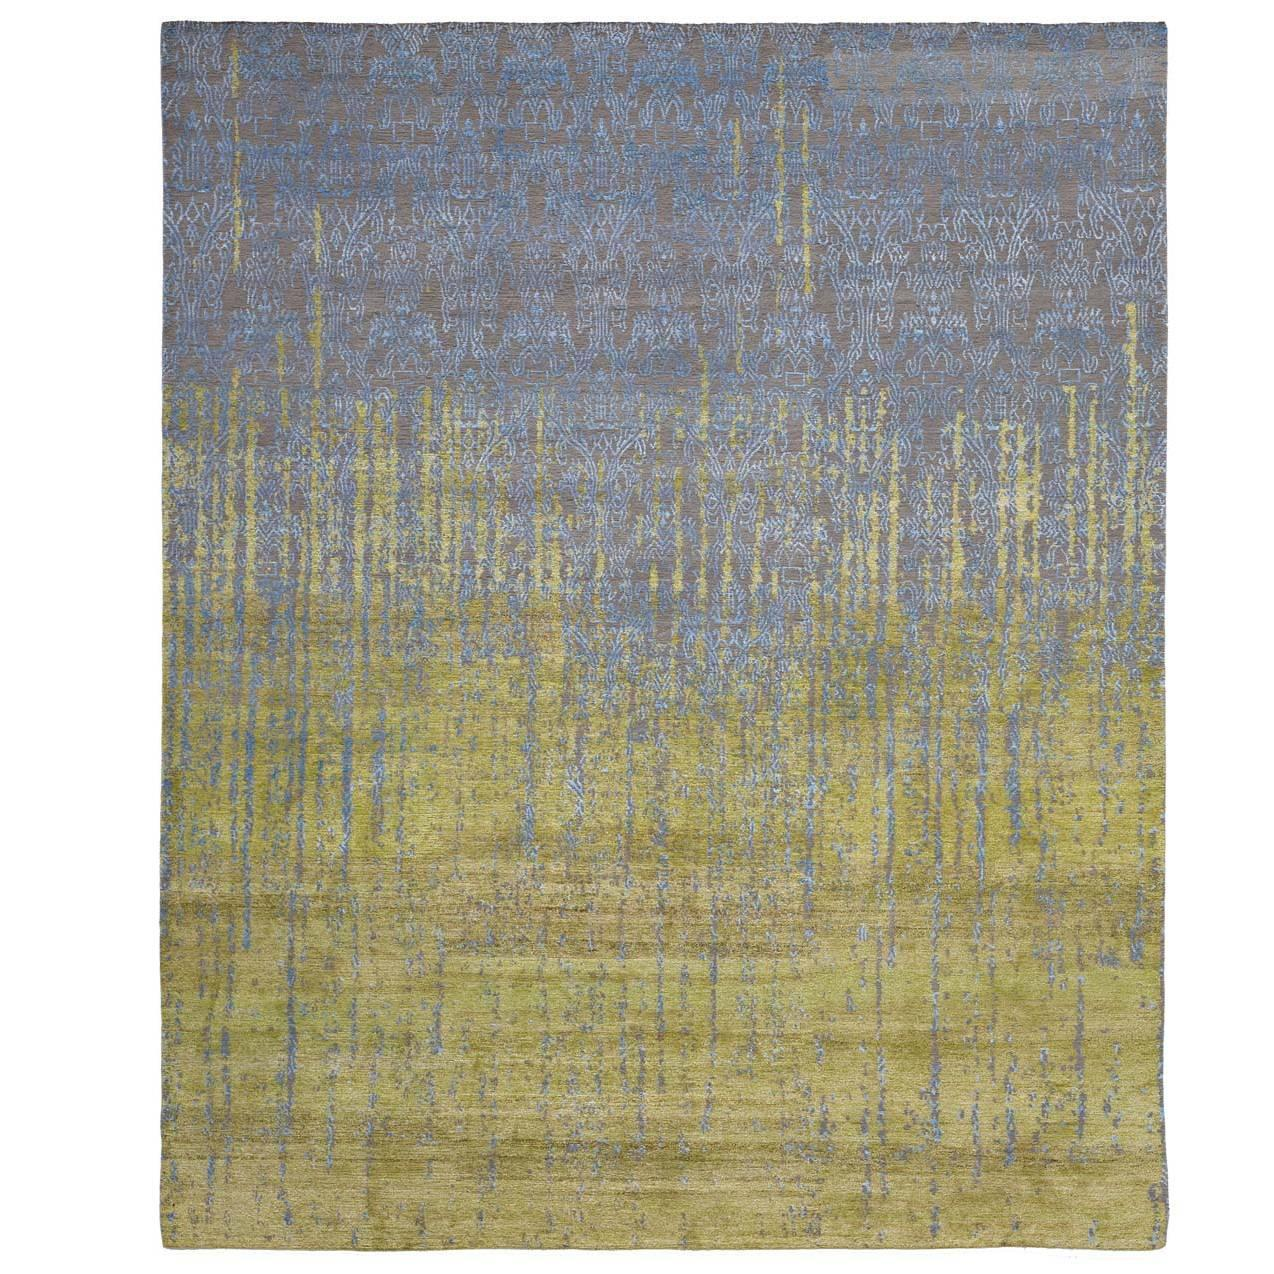 Roma Vendetta From Erased Classic Carpet Collection By Jan Kath For Sale At 1stdibs